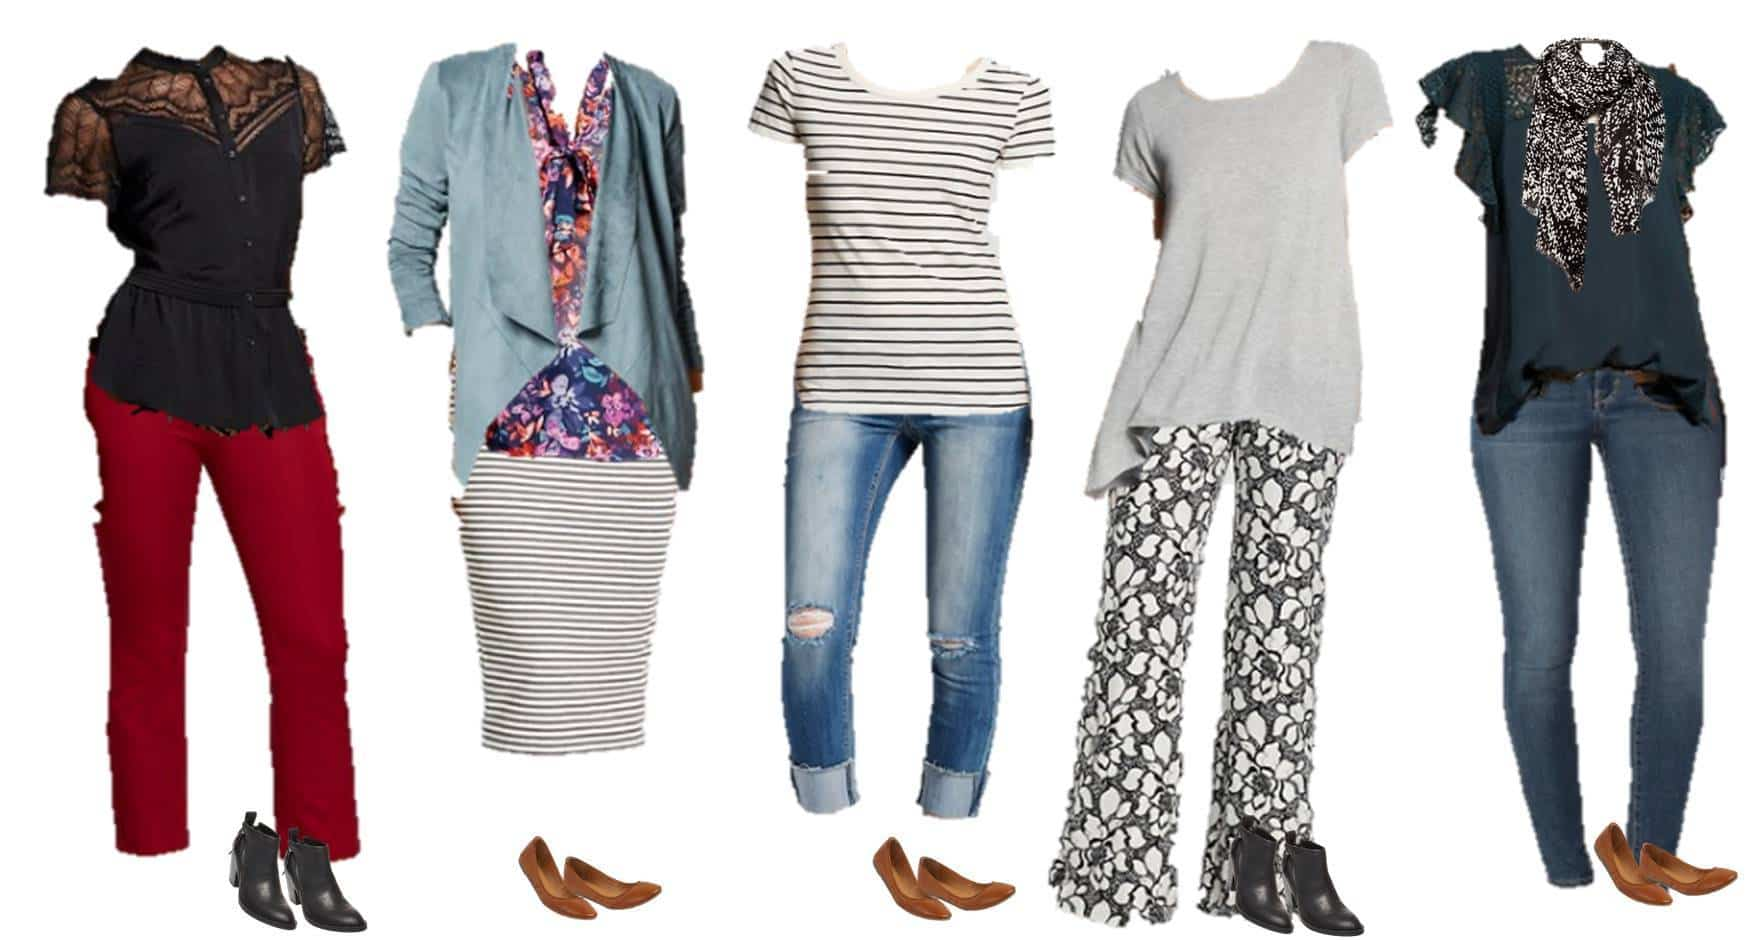 8.2 Mix and Match Fashion - Fall Styles from Target 6-10